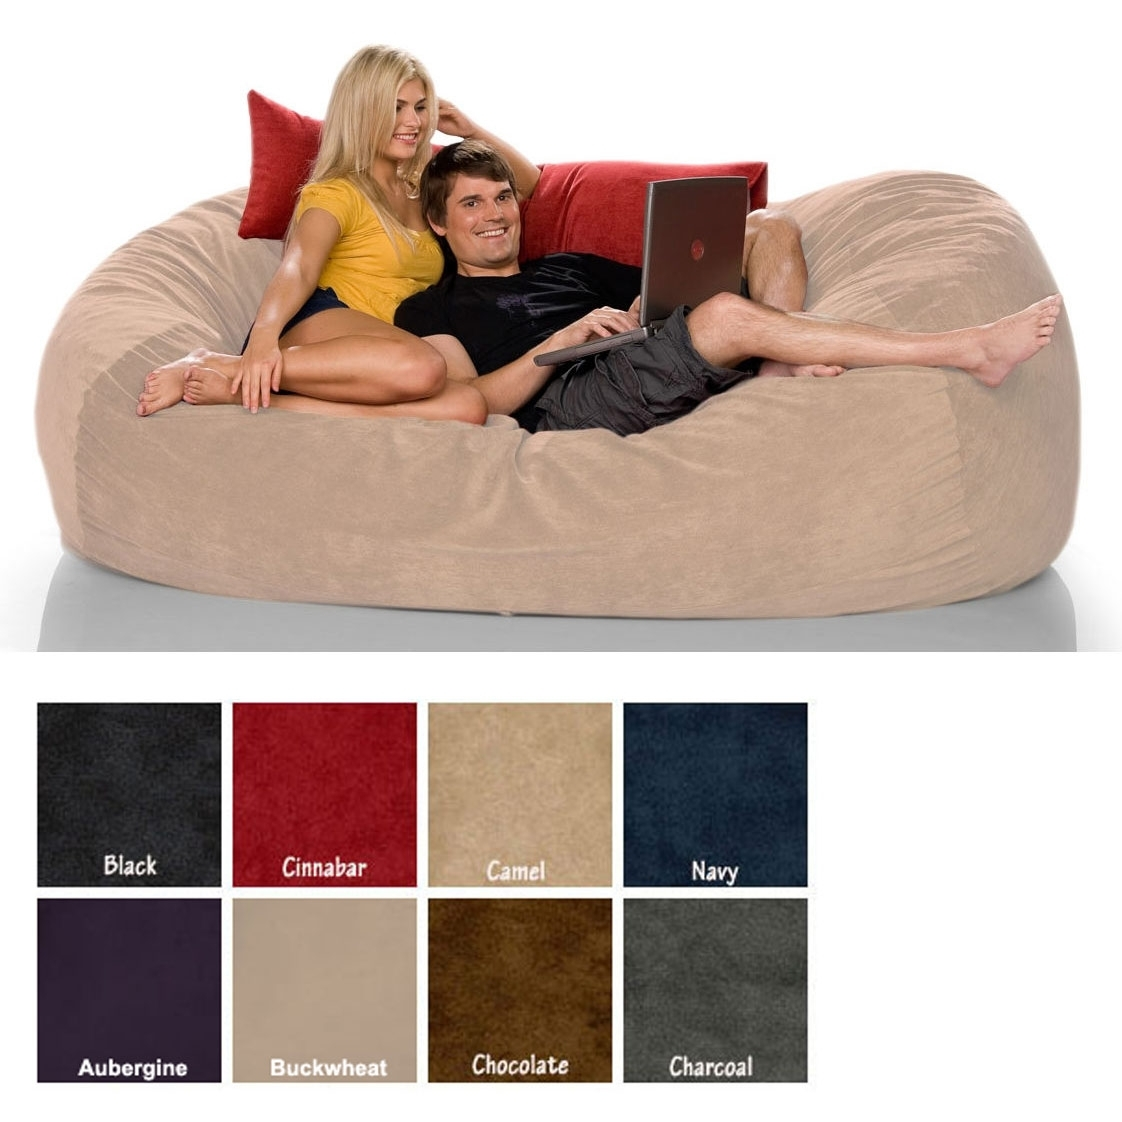 Sofas Center Faux Suede Sofabed Brn 1500x1500ofaack Bean Bag Inside Bean Bag Sofa Chairs (Image 14 of 15)